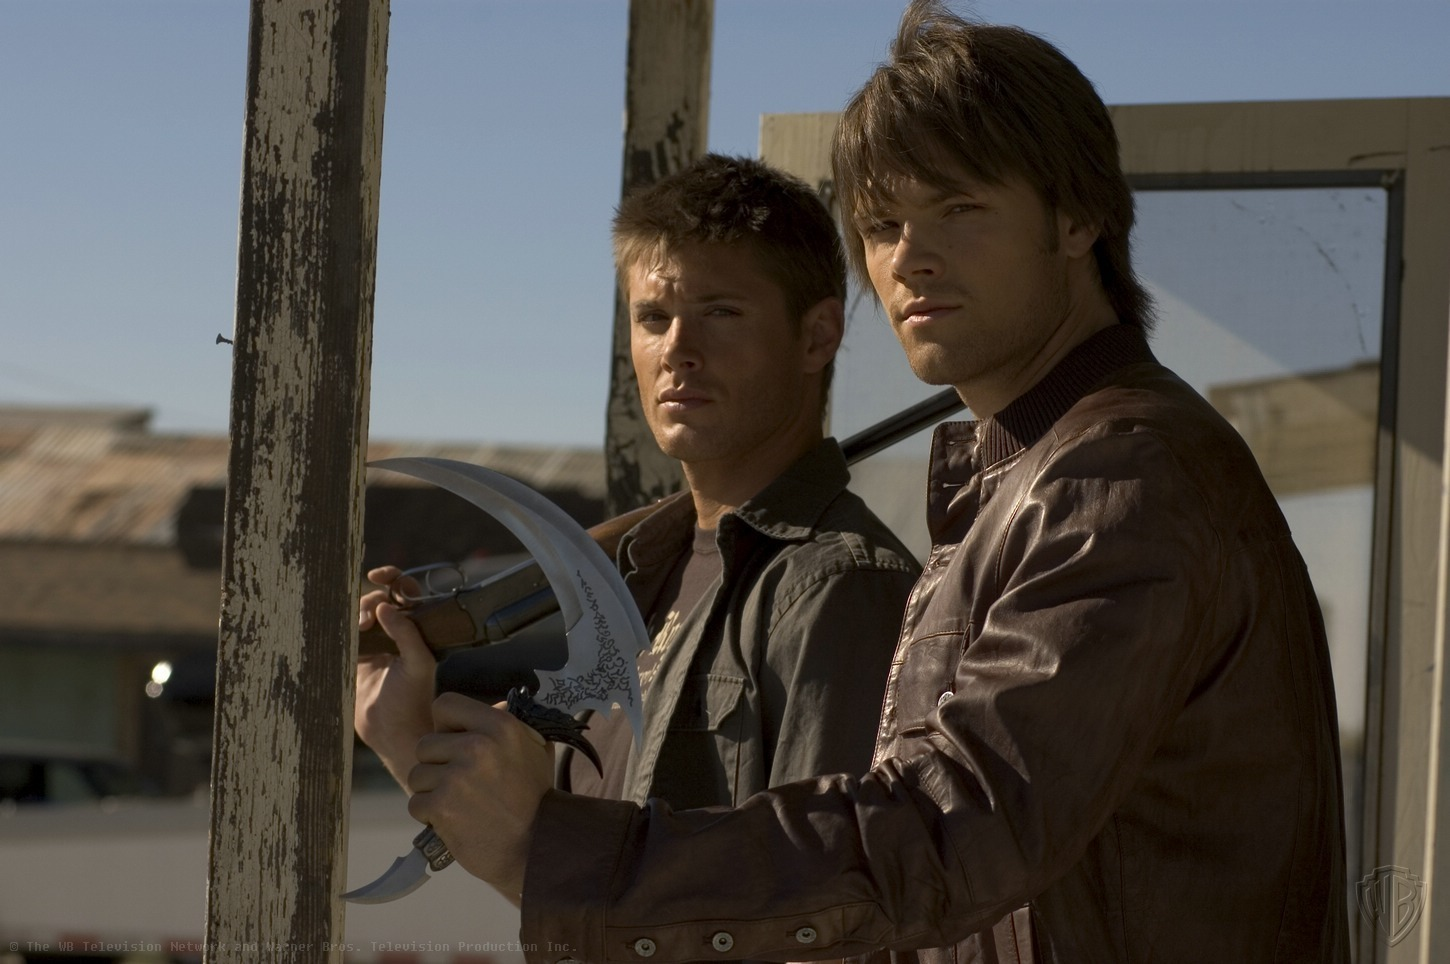 http://www.thewinchesterfamilybusiness.com/images/PromoPhotos/ADDITIONAL-SEASON-1-PROMOTION-PICTURES-supernatural-1516641-1450-964.jpg